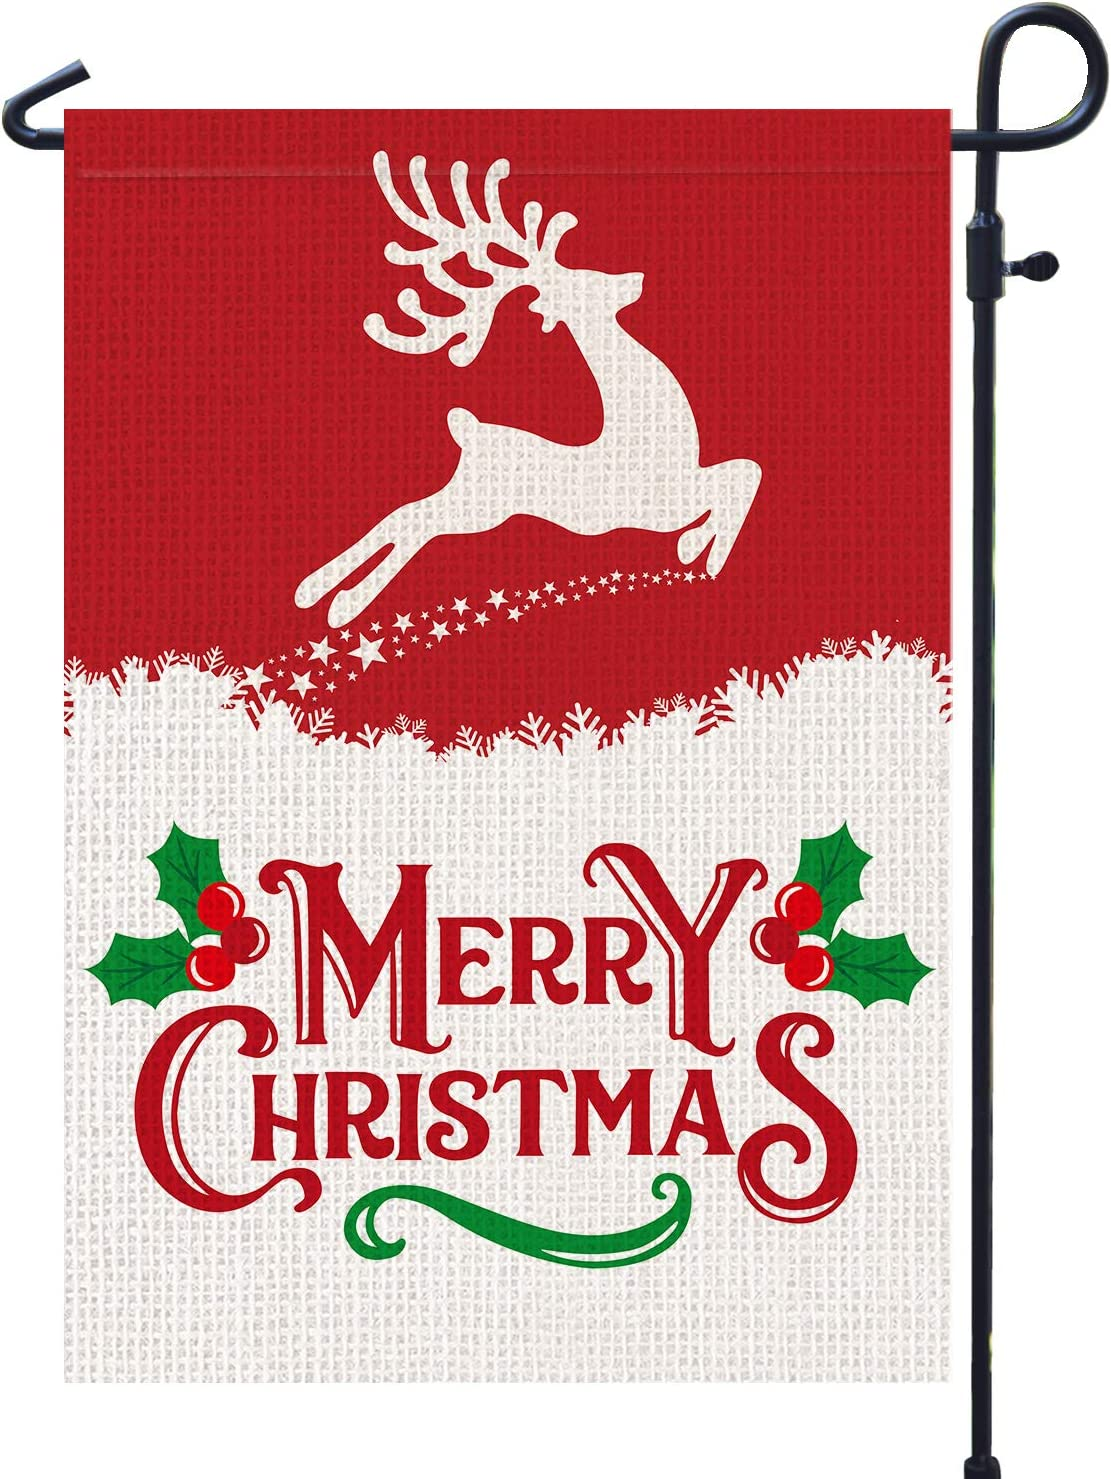 PAMBO Merry Christmas Garden Flags Burlap, Deer and Elk 12x18 Double Sided Flag for Christmas Outside Yard Outdoor Decoration